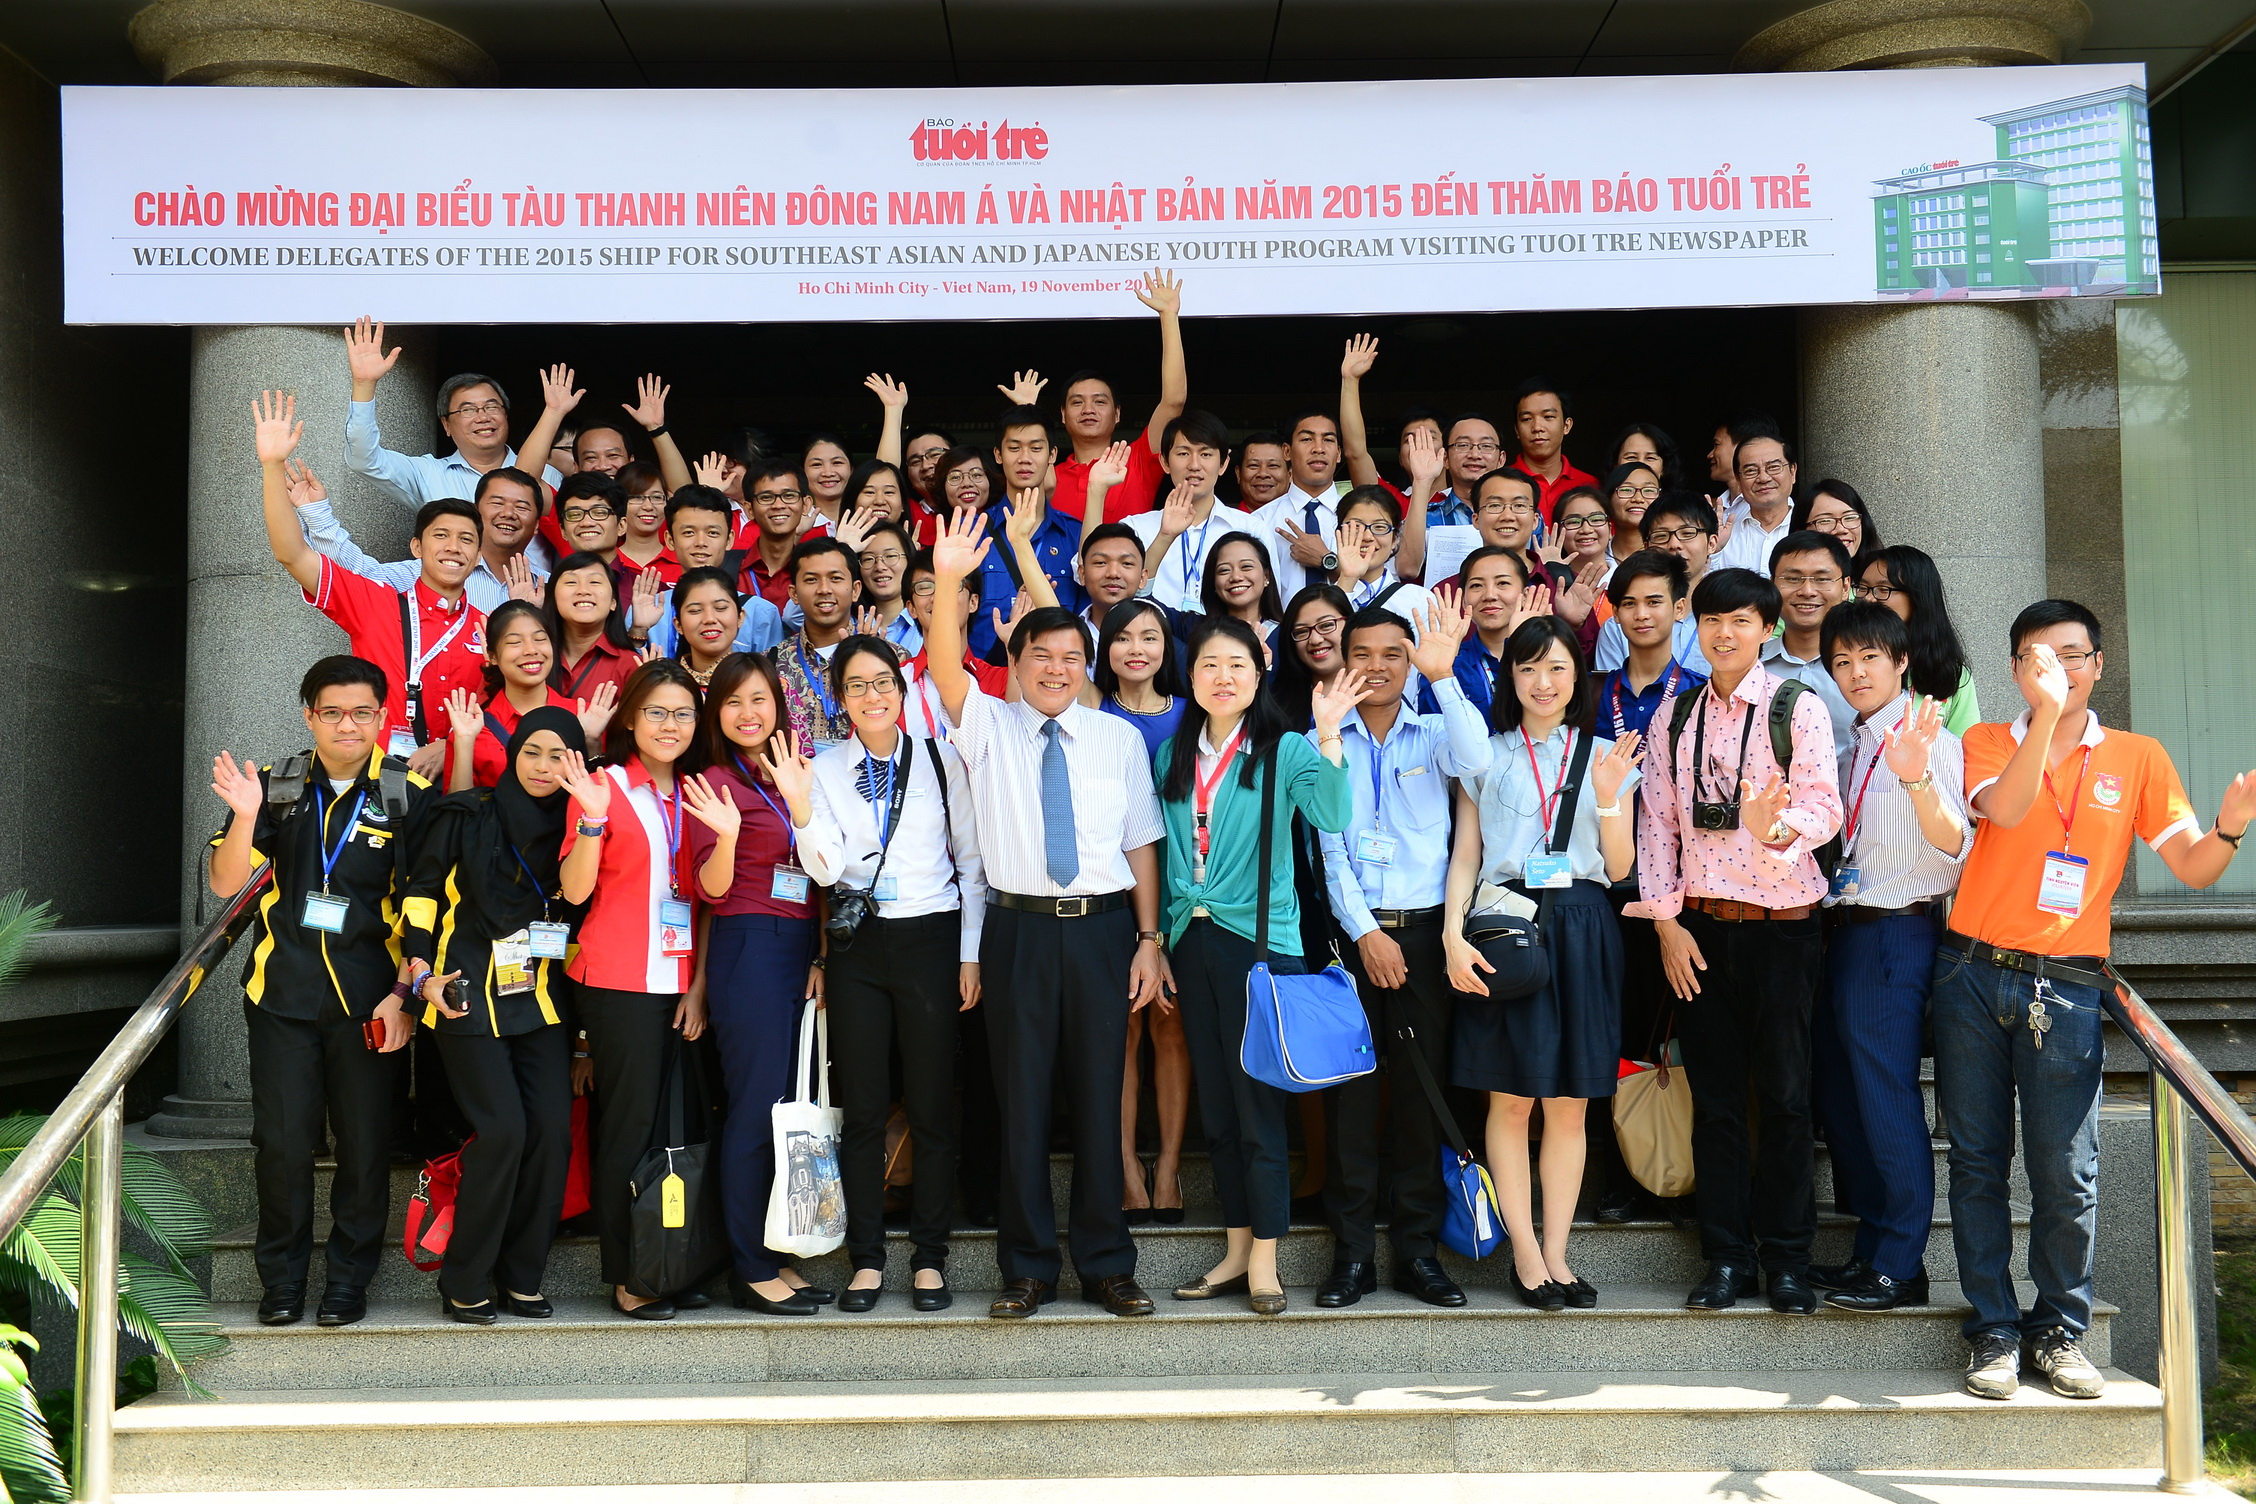 Southeast Asian youths tour Tuoi Tre office during Ho Chi Minh City trip